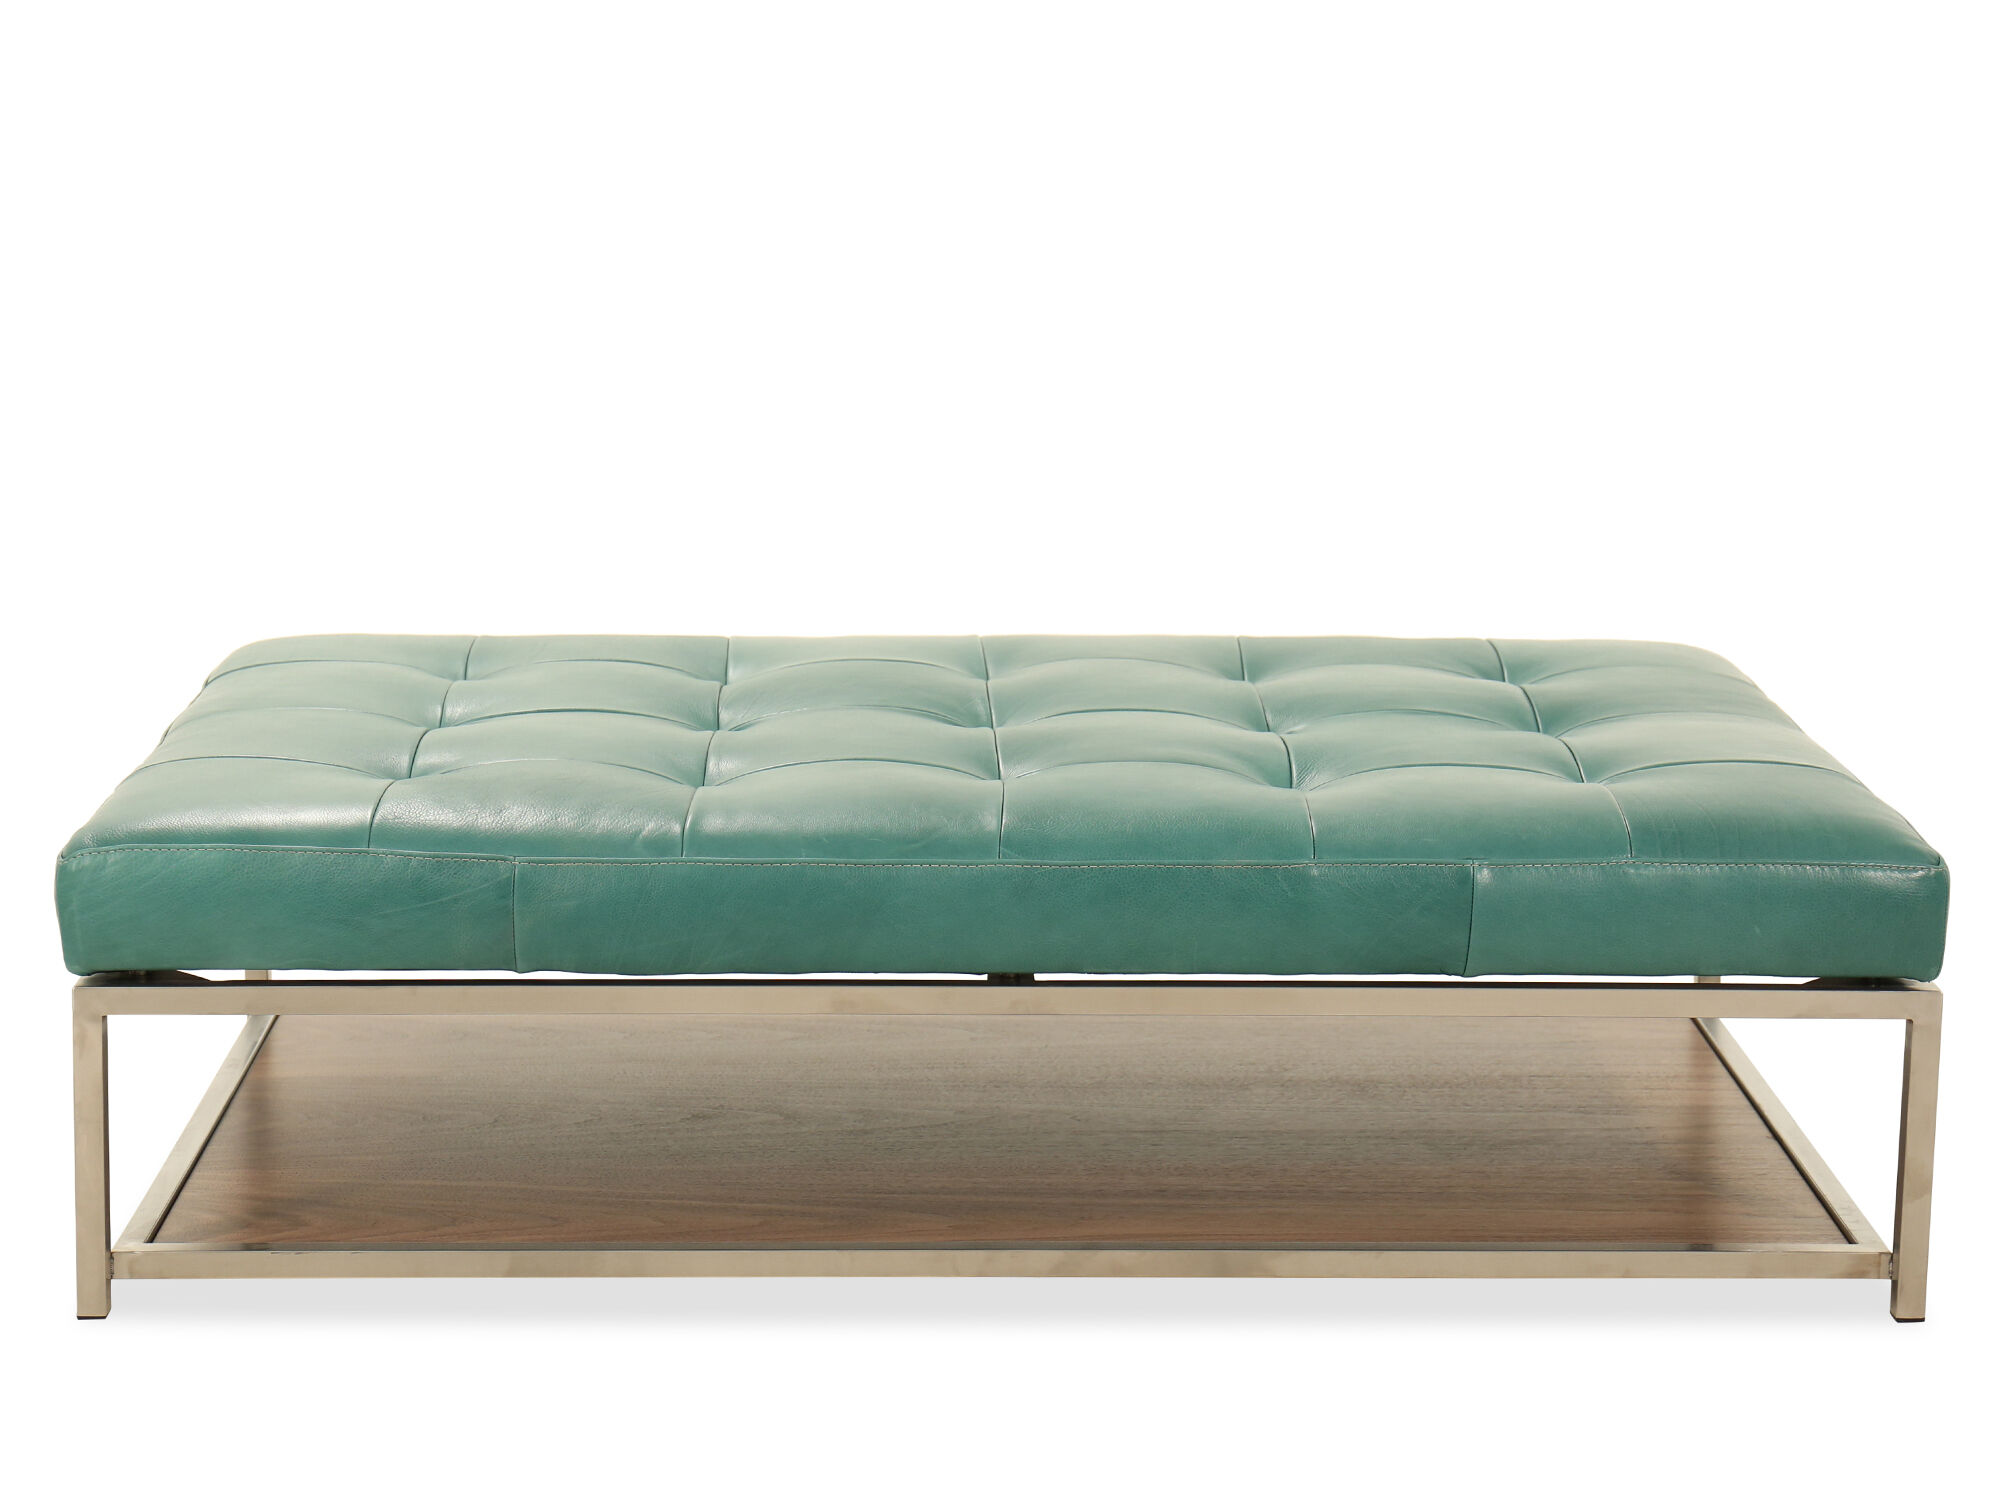 Tufted Leather 63 Quot Storage Ottoman In Green Mathis